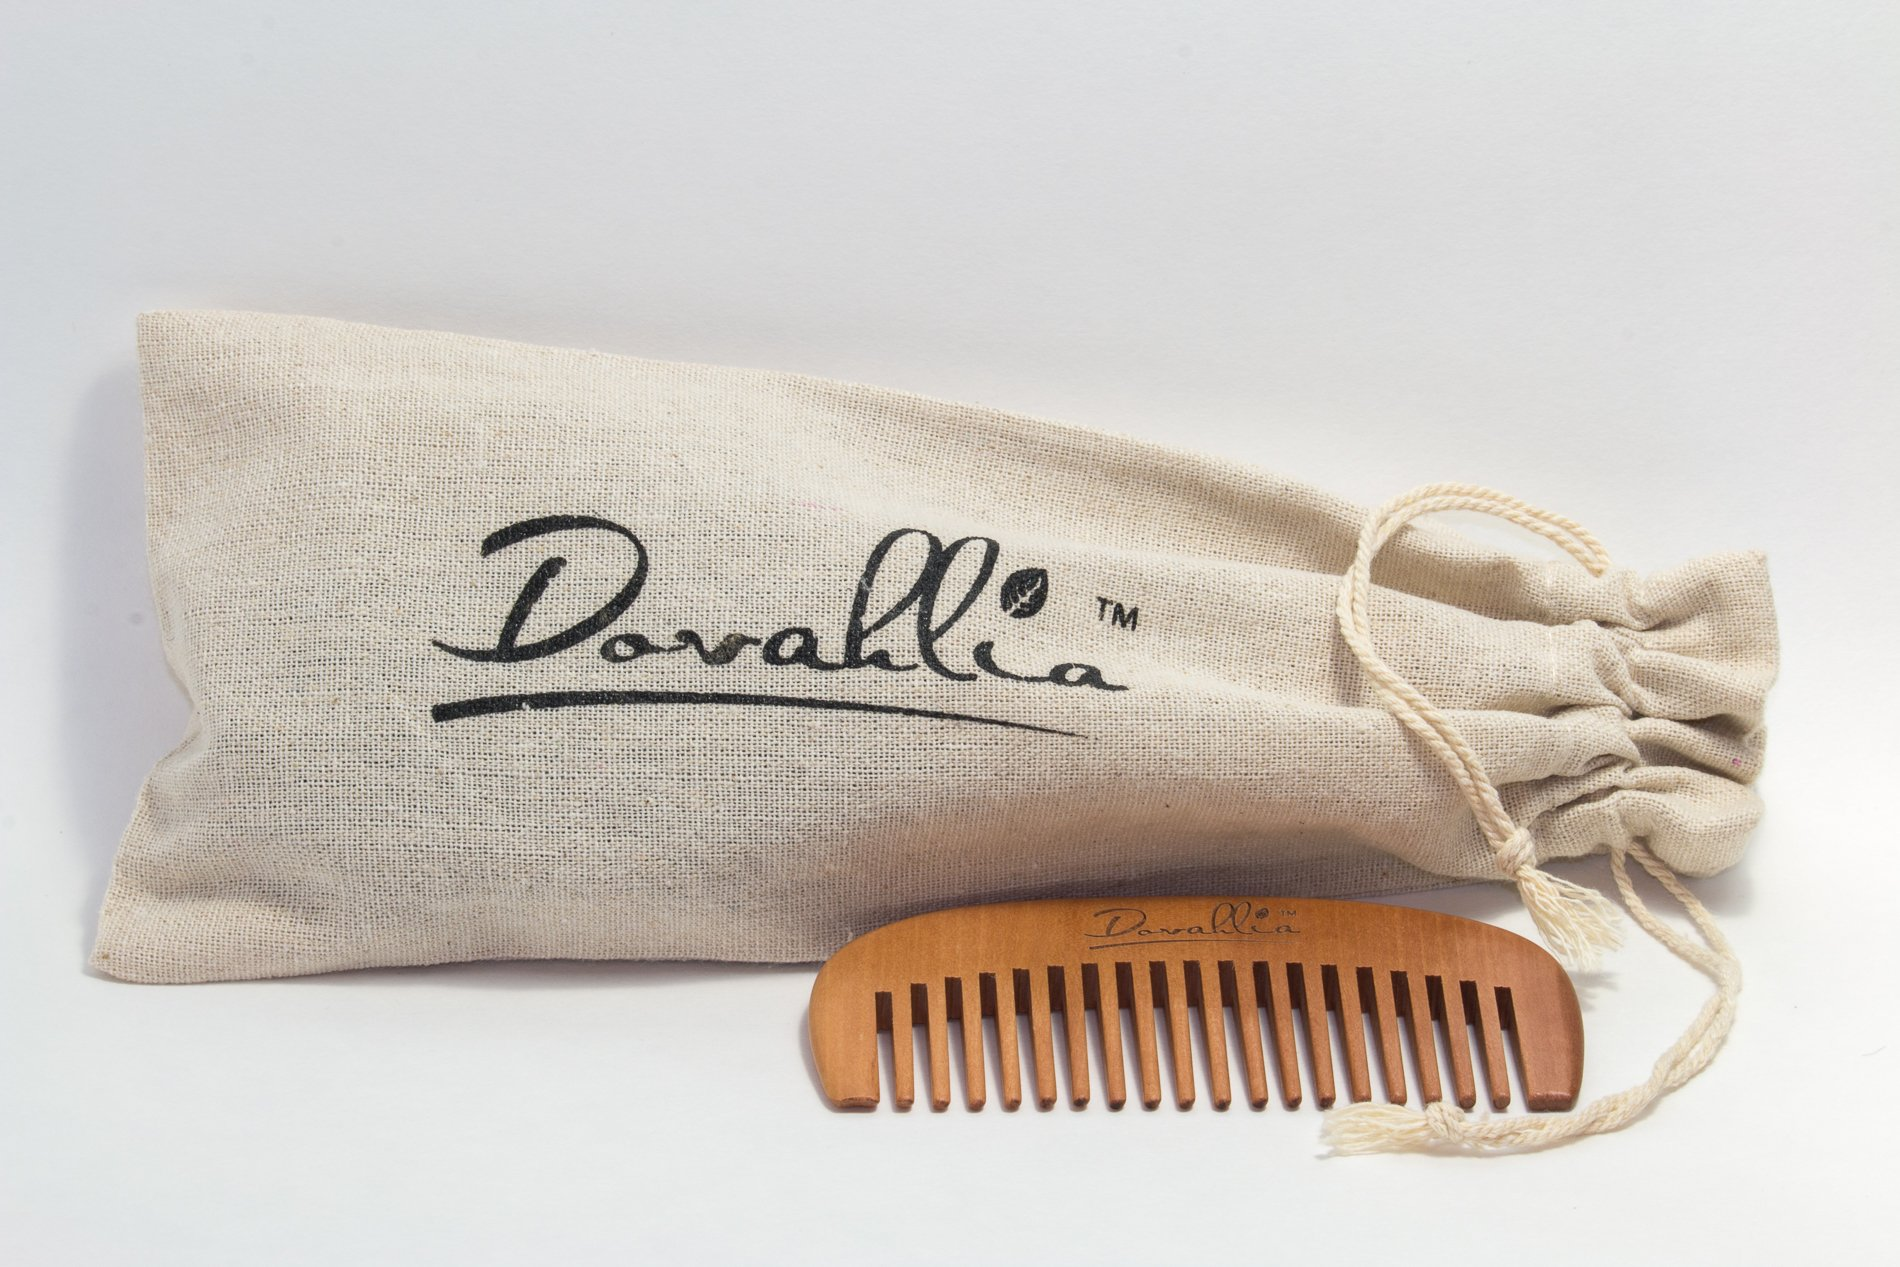 Boar Bristle Hair Brush Set for Women and Men - Designed for Thin and Normal Hair - Adds Shine and Improves Hair Texture - Wood Comb and Gift Bag Included (black) by Dovahlia (Image #2)